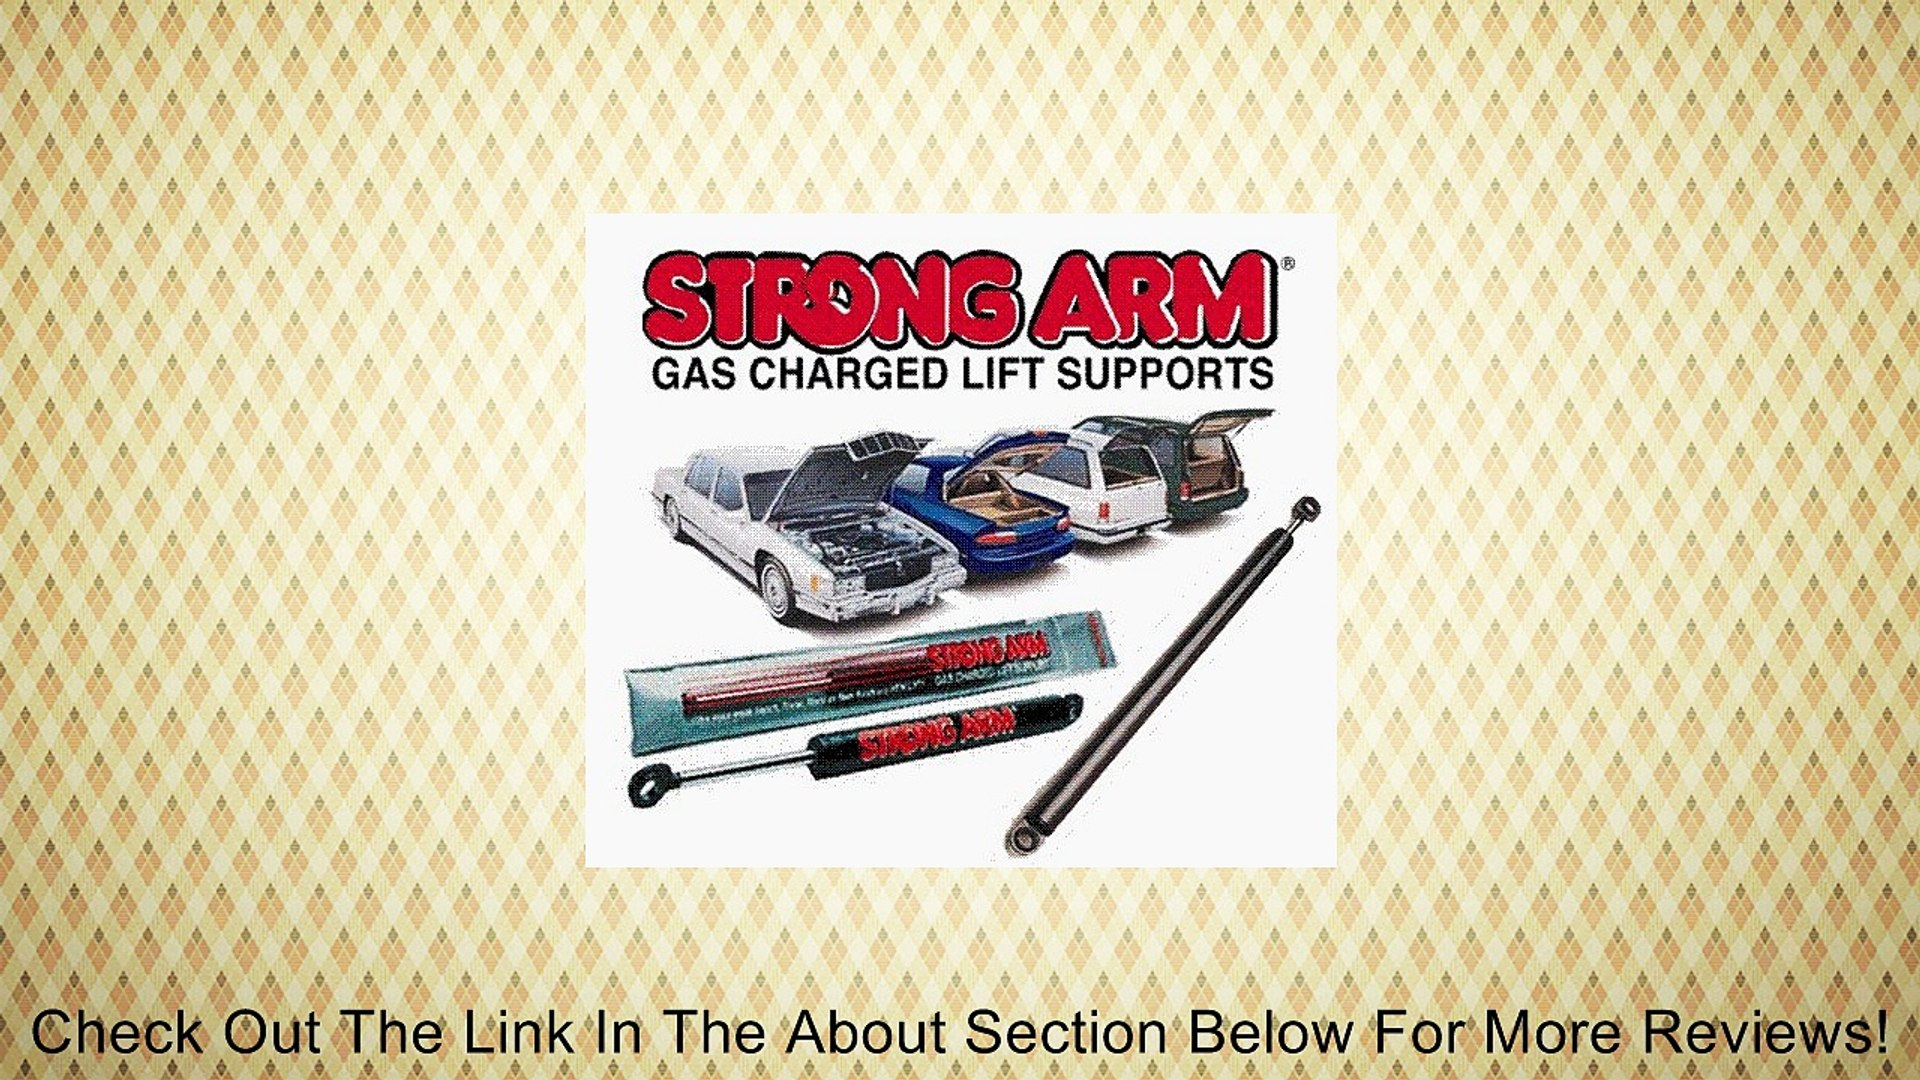 Liftgate Fits Nissan Murano 2005 2006 2007 Hatch 2 Qty Struts Trunk Lift Supports Shocks Strong Arm 6122